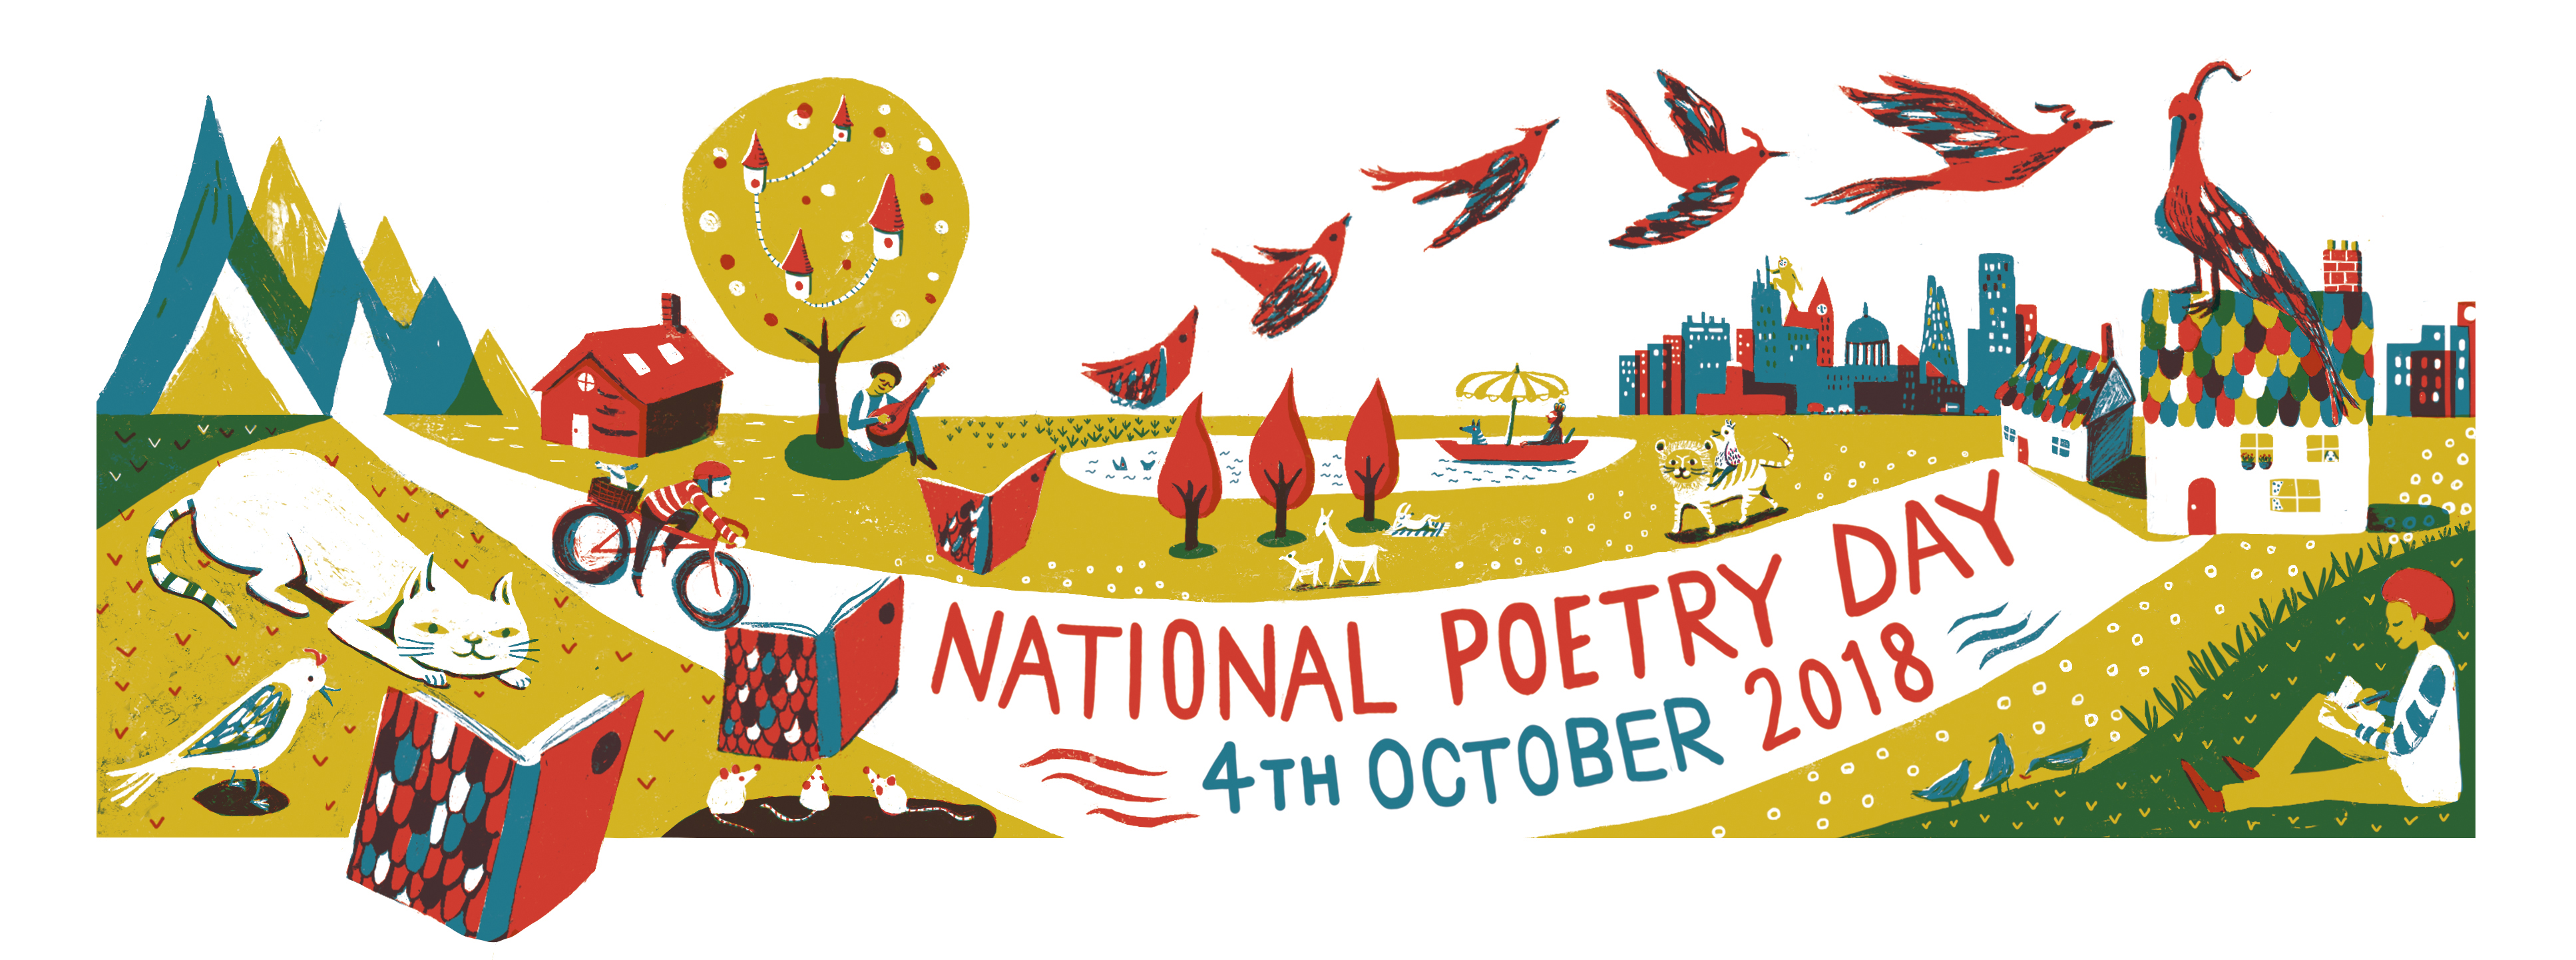 National Poetry Day web banner